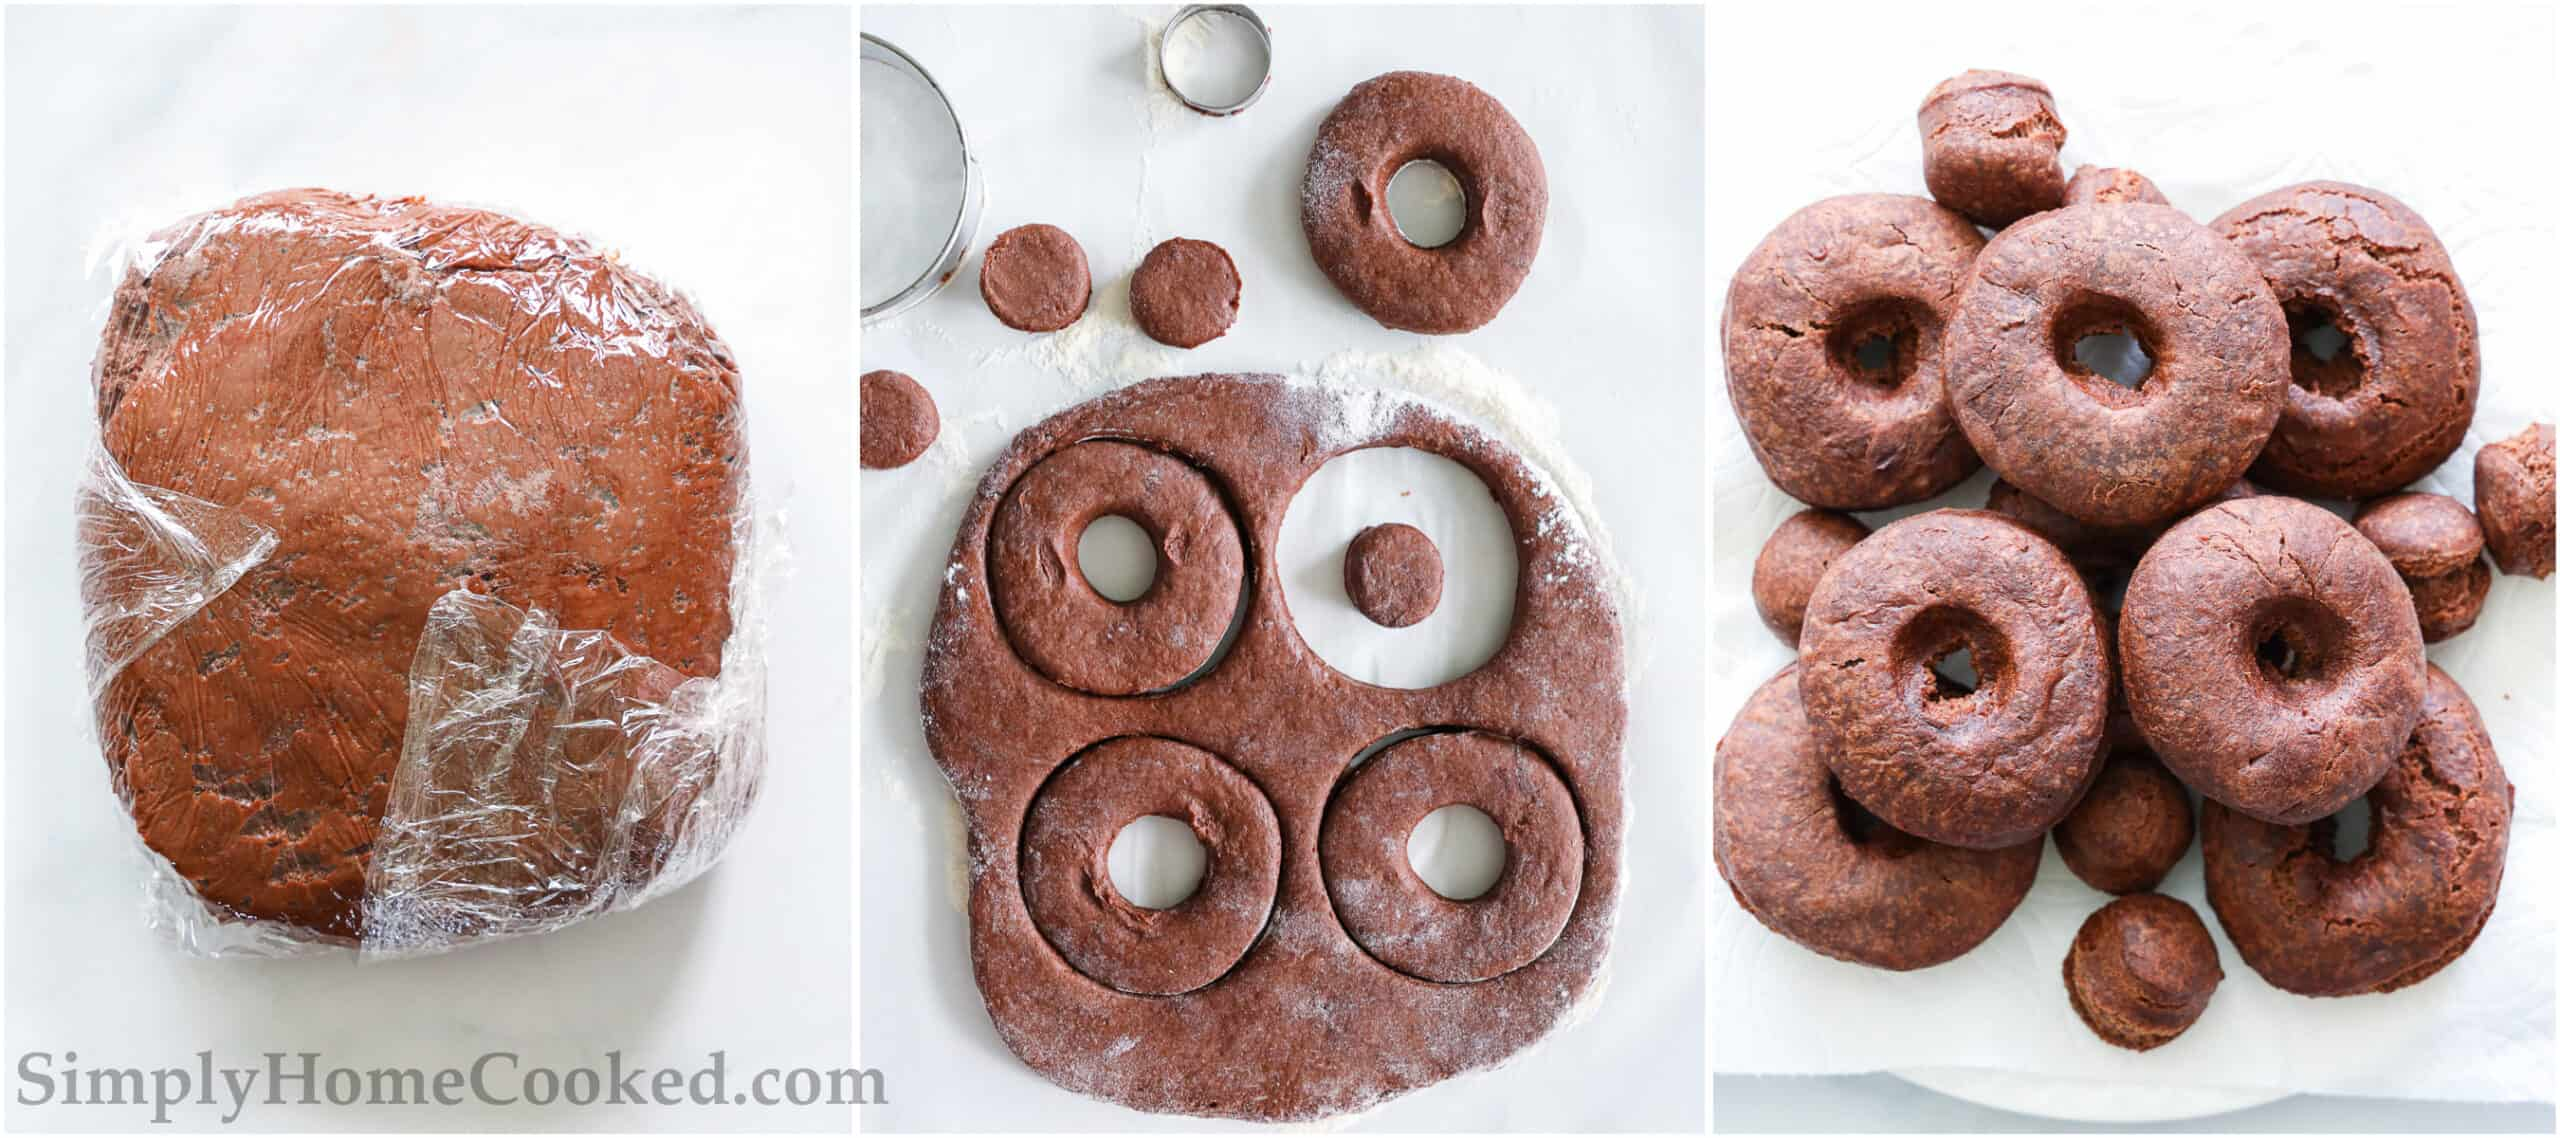 Steps to make Chocolate Donuts, including chilling the dough and cutting out the donuts, then frying them.